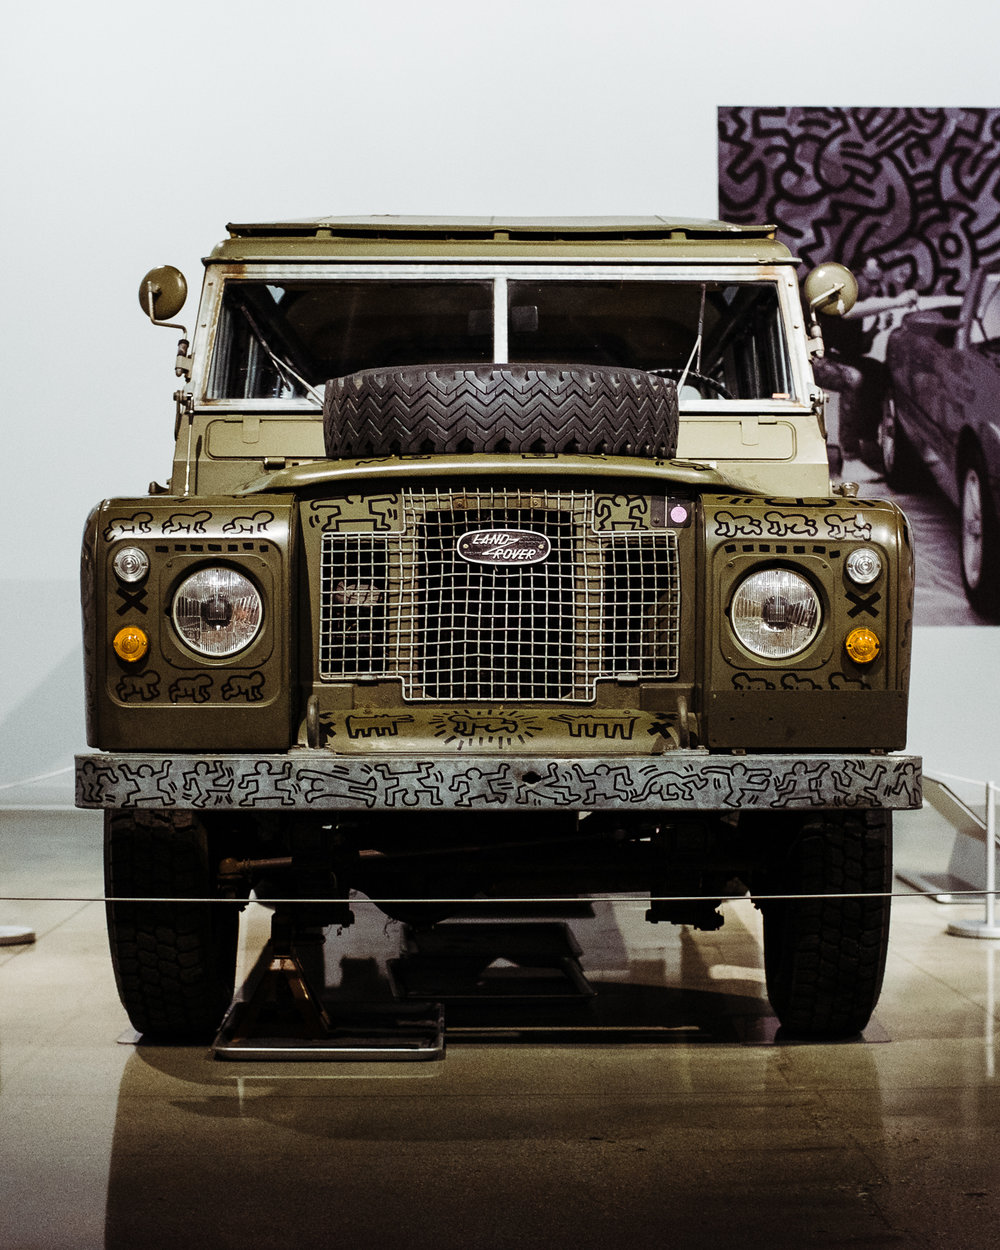 land rover series 3 petersen keith haring 002